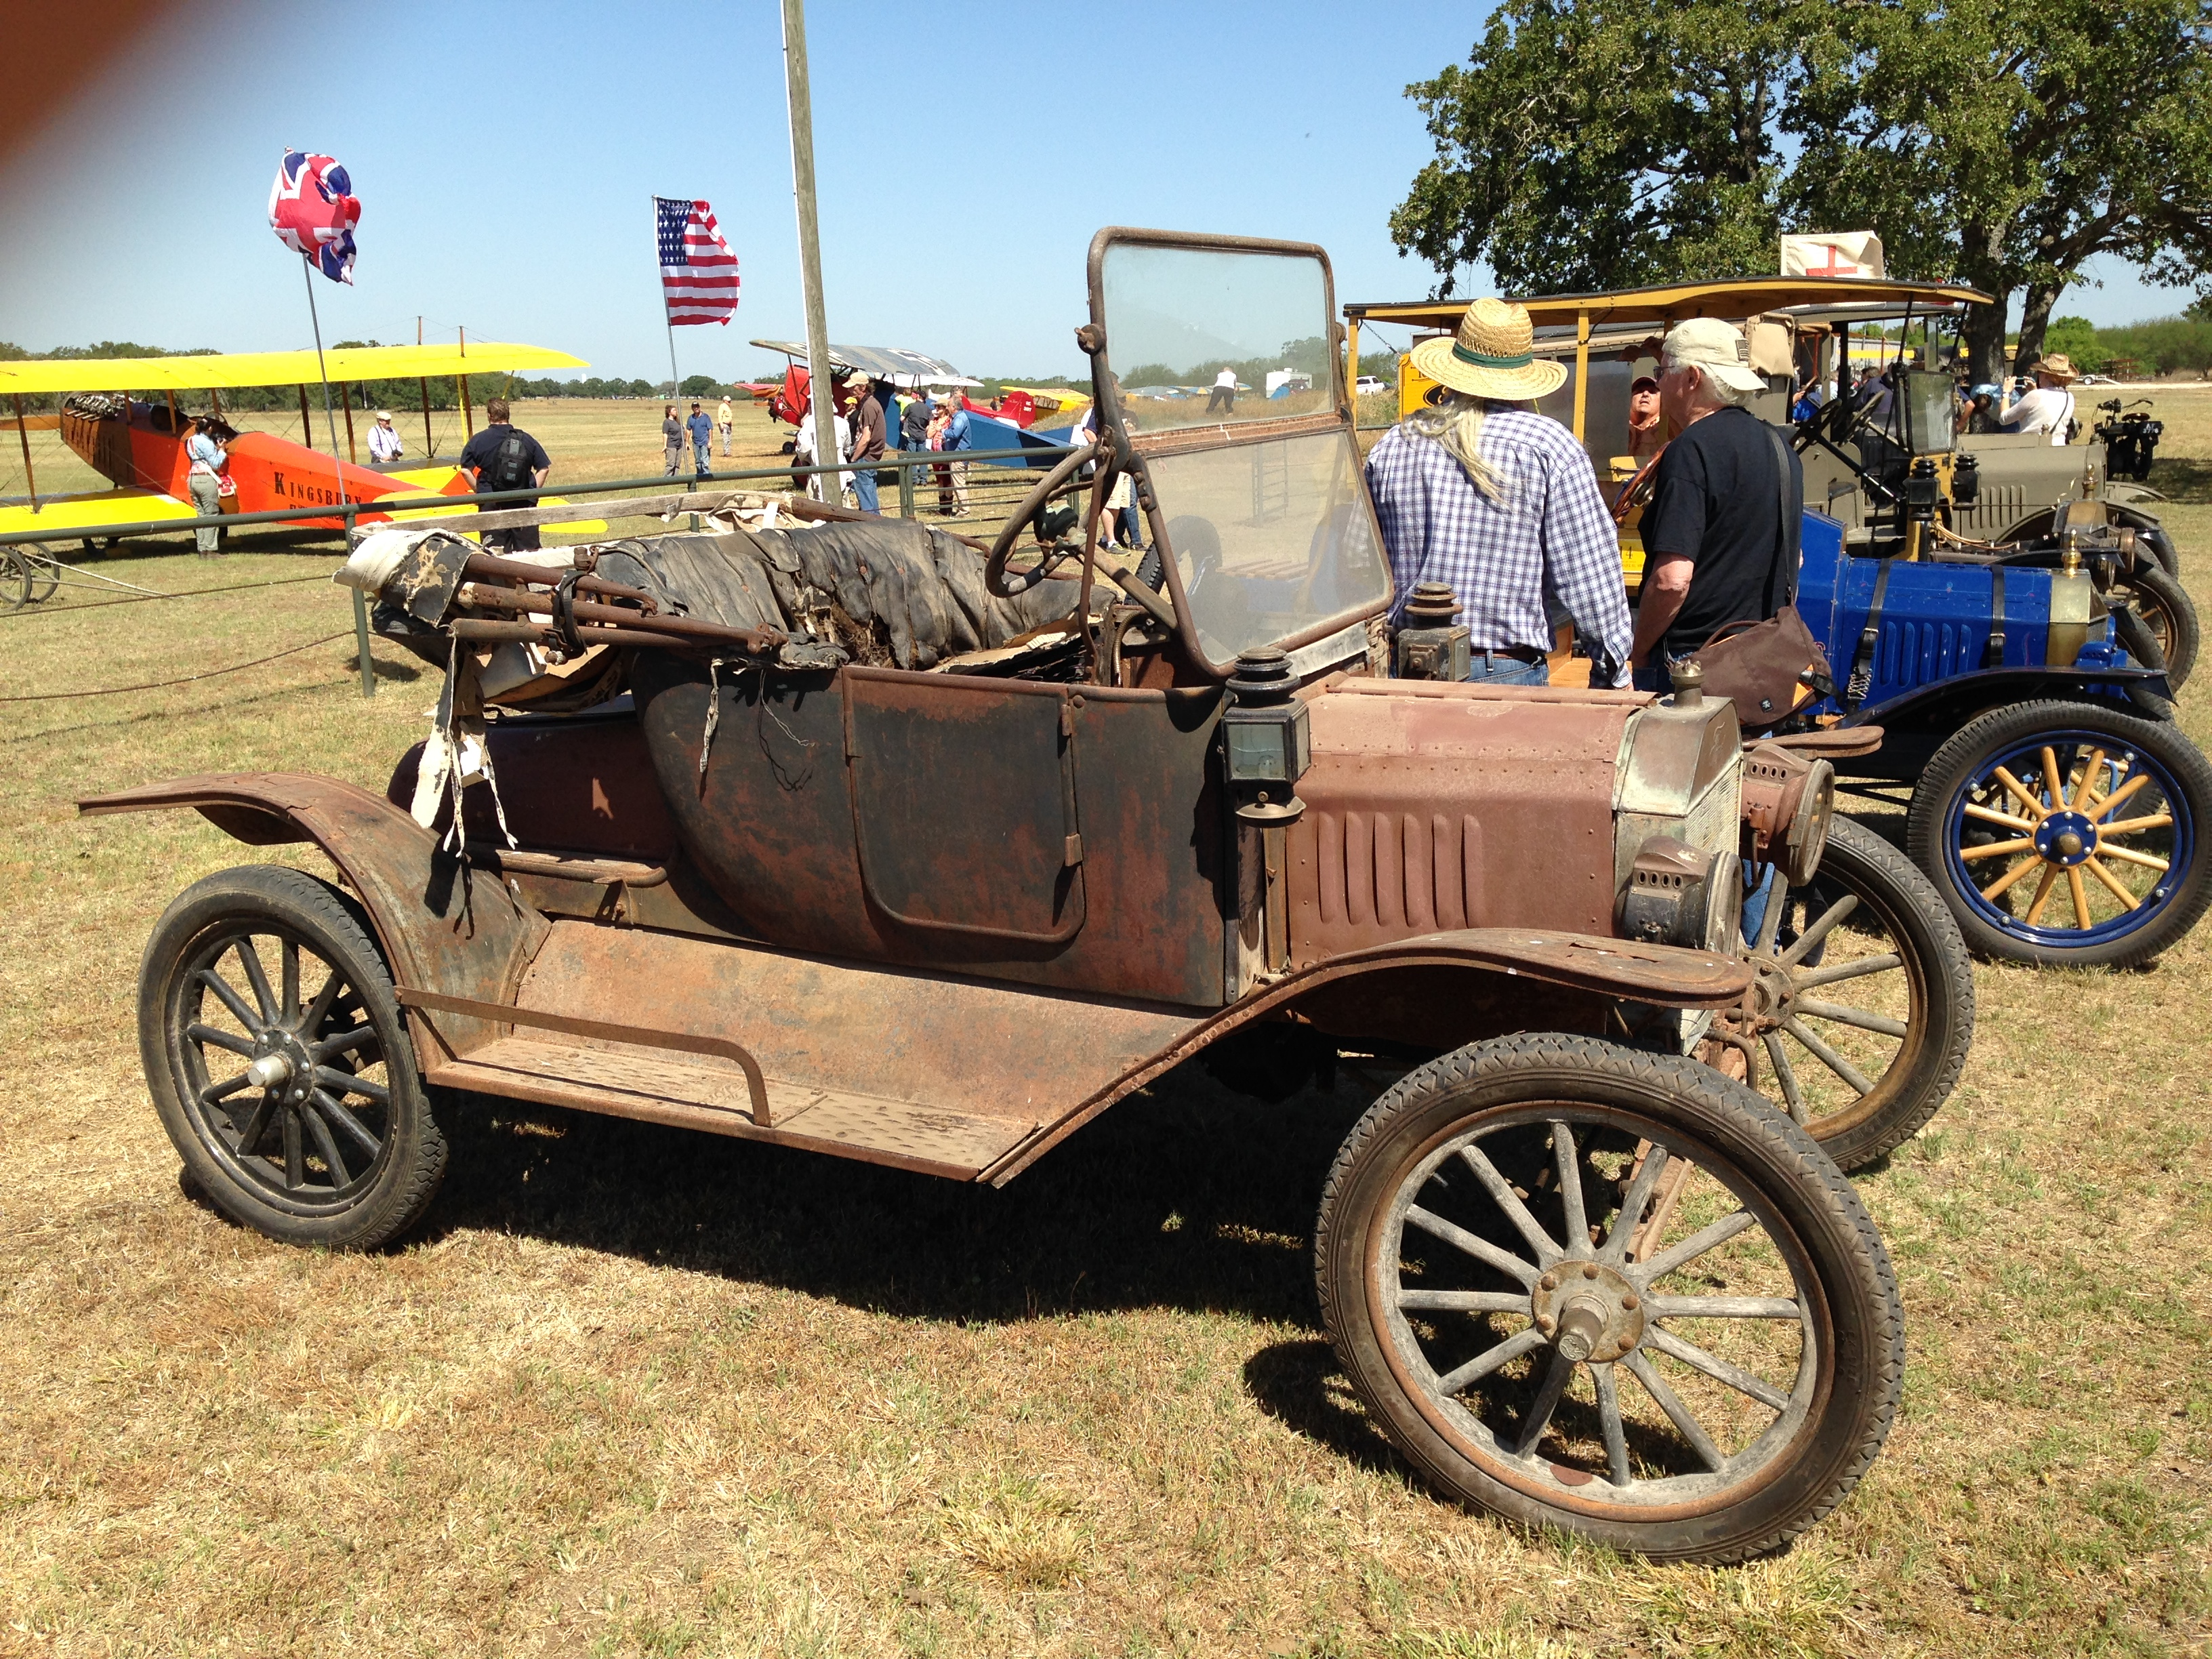 Cars were featured, too. Lots of rods and customs, WWI ambulances, Model Ts. But this unrestored Model T got my attention. Looking for a little restoration project?